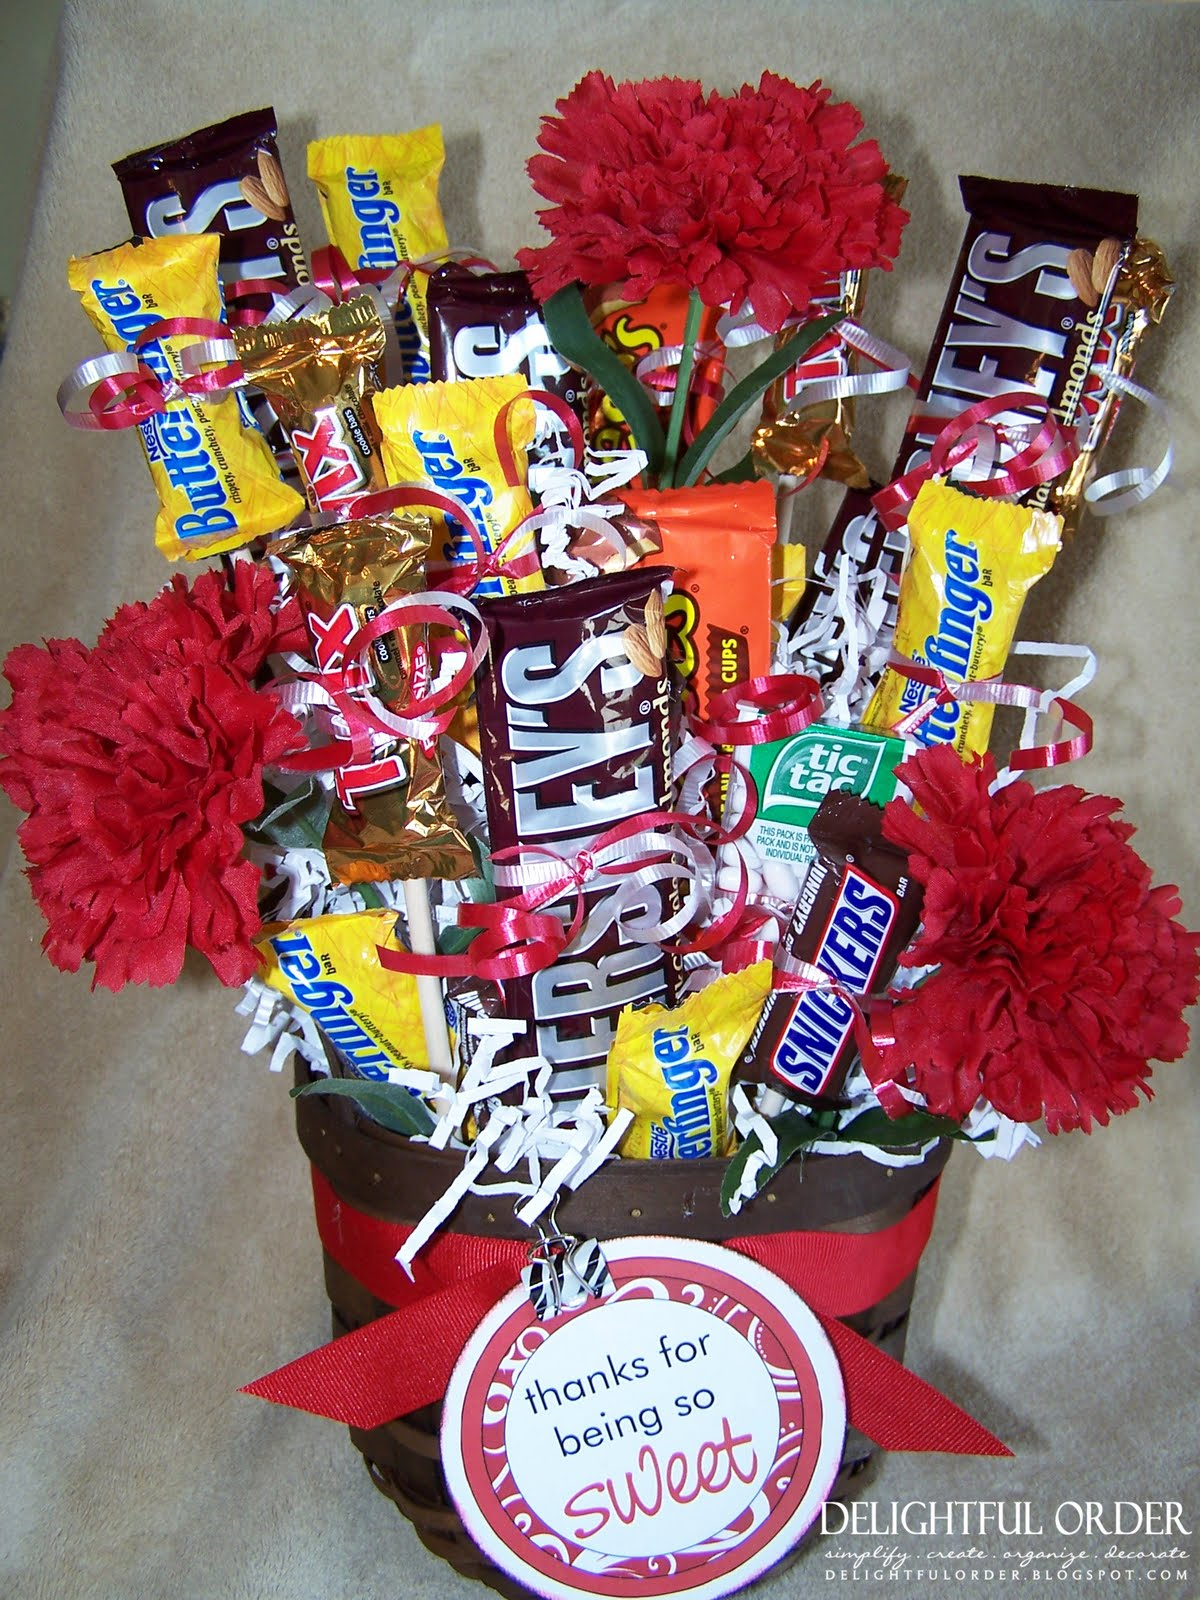 How To Make Chocolate Flower Basket : Delightful order candy bouquet tutorial